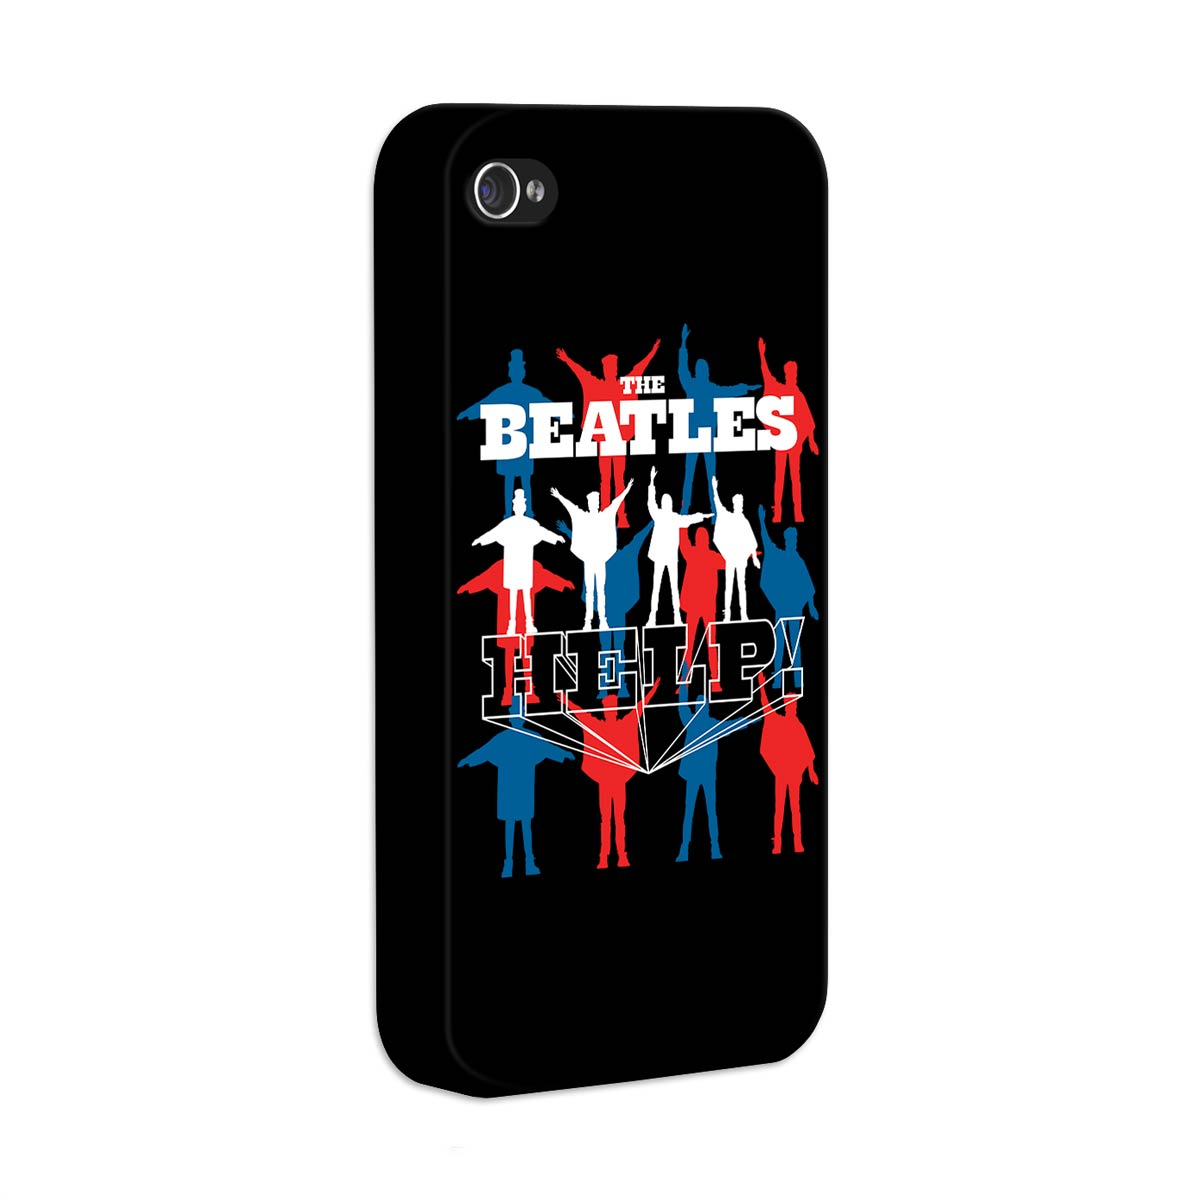 Capa de iPhone 4/4S The Beatles Help